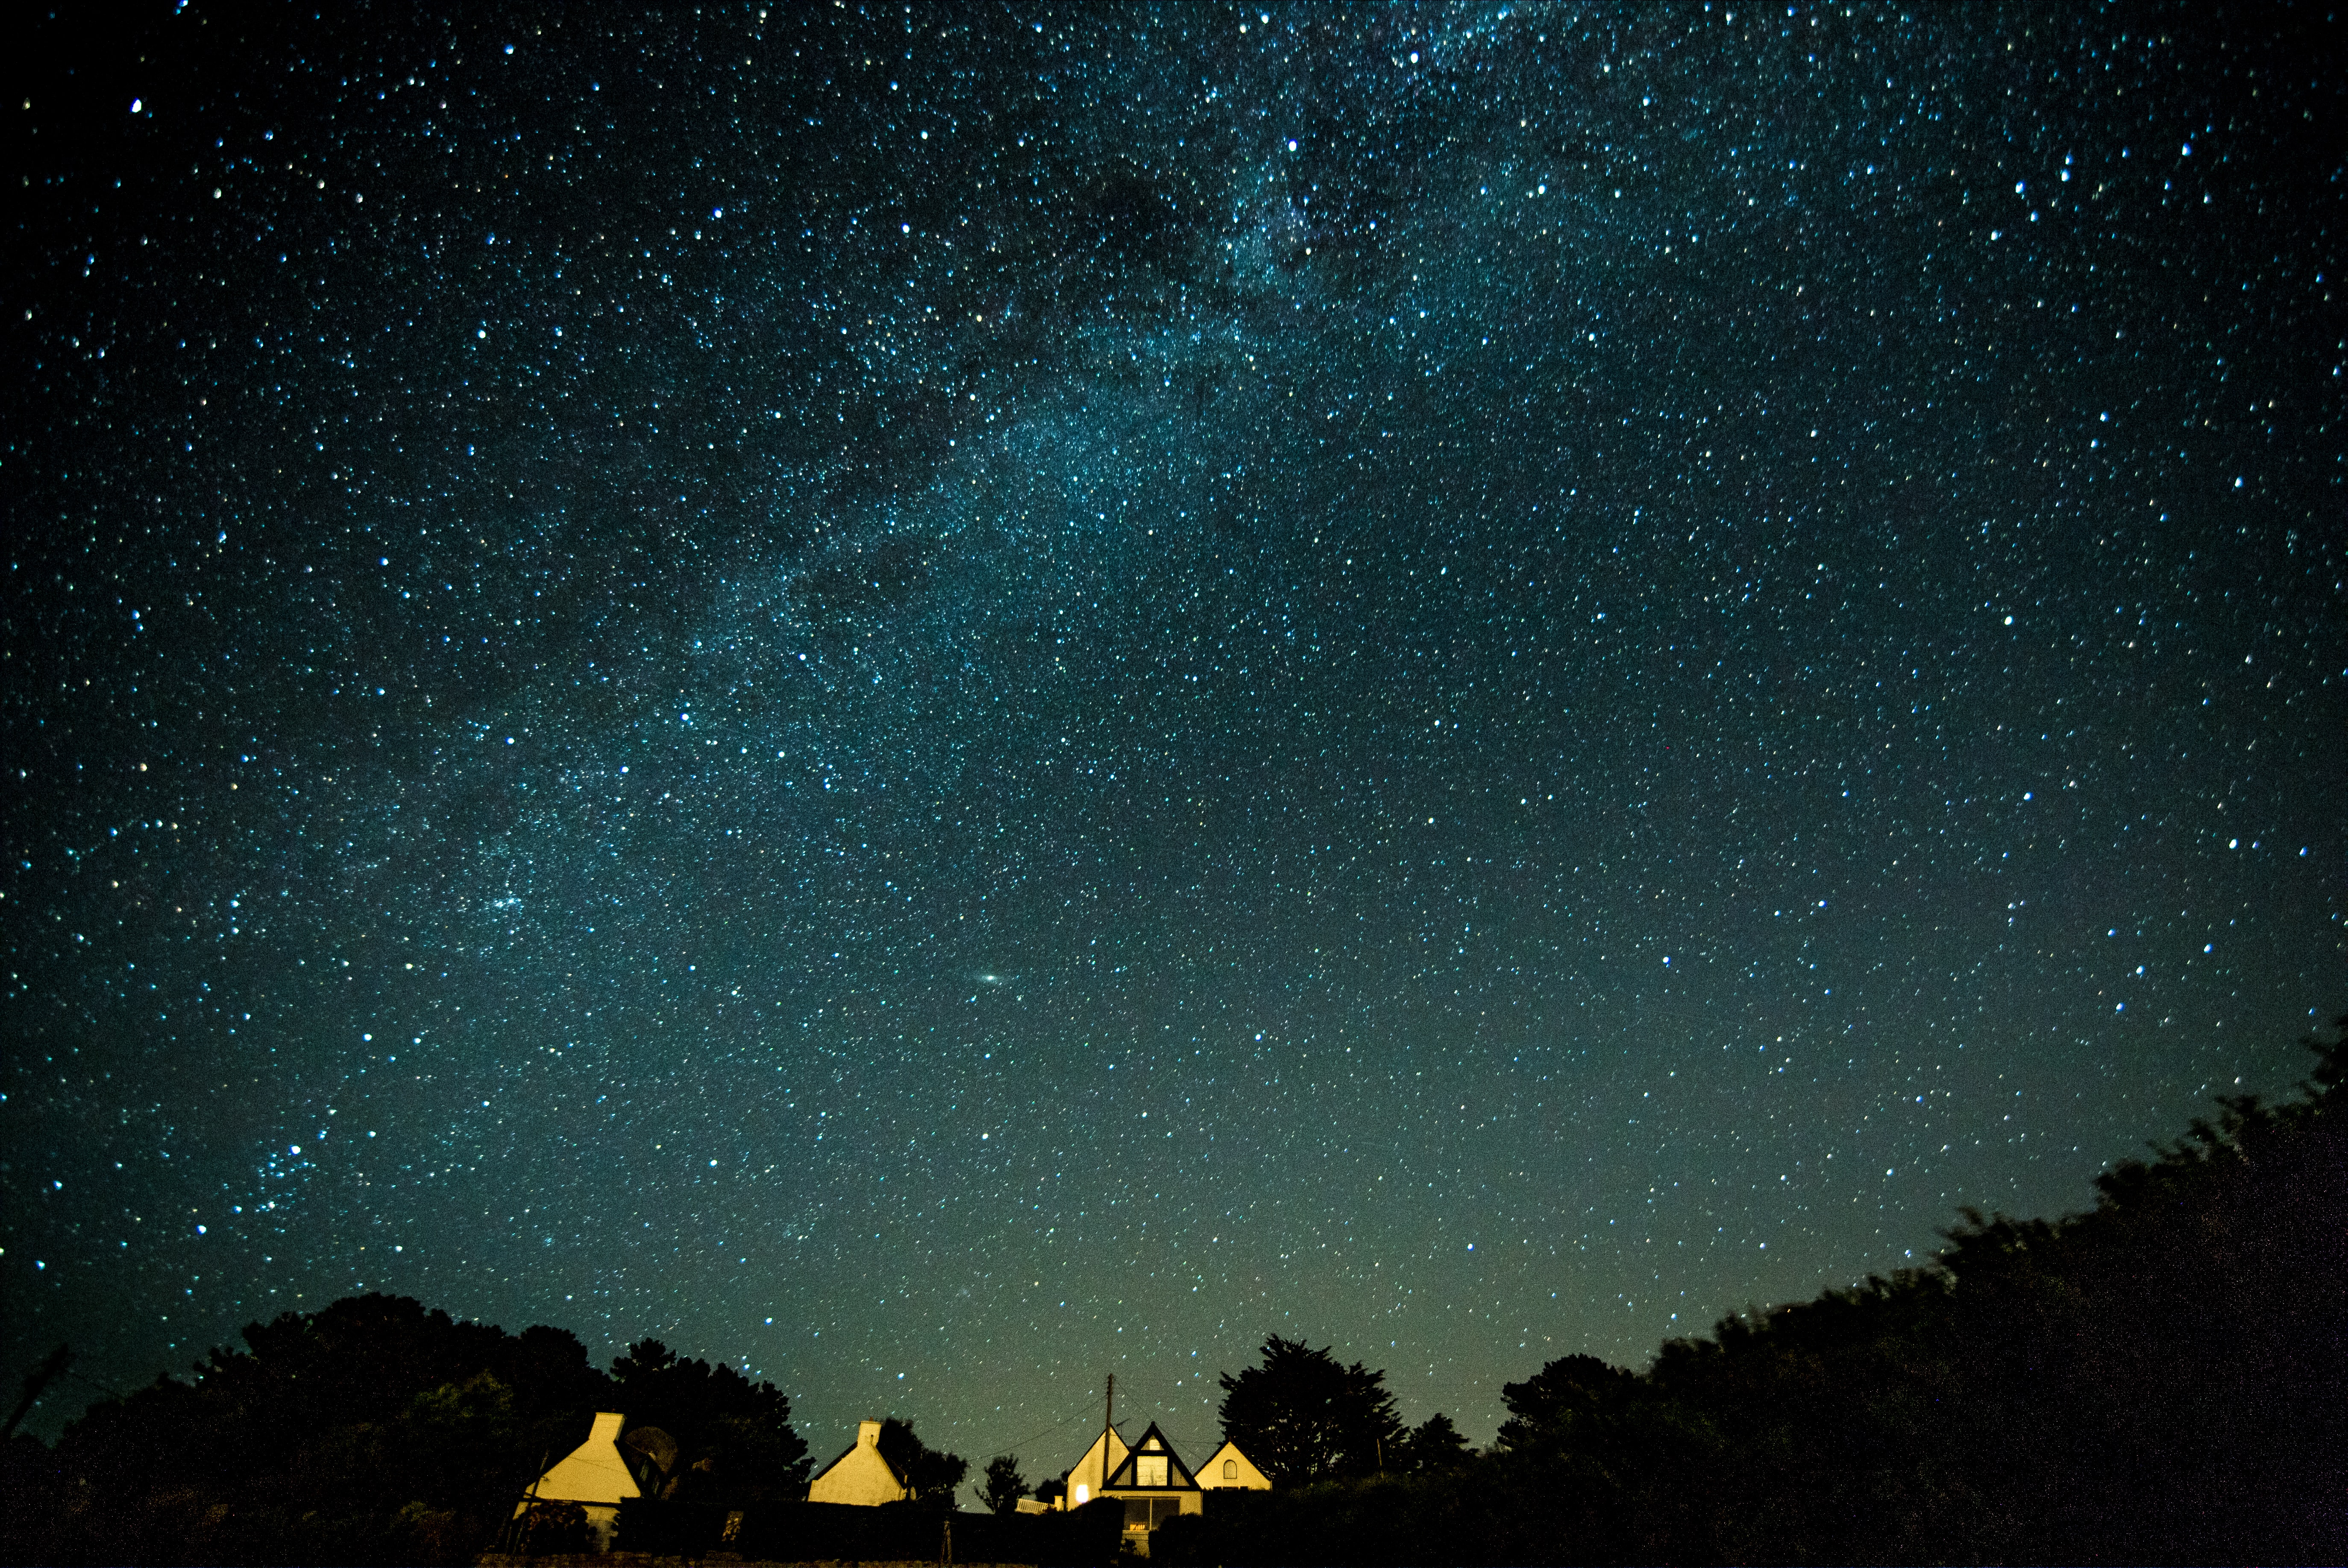 lighted house under sky with stars at night